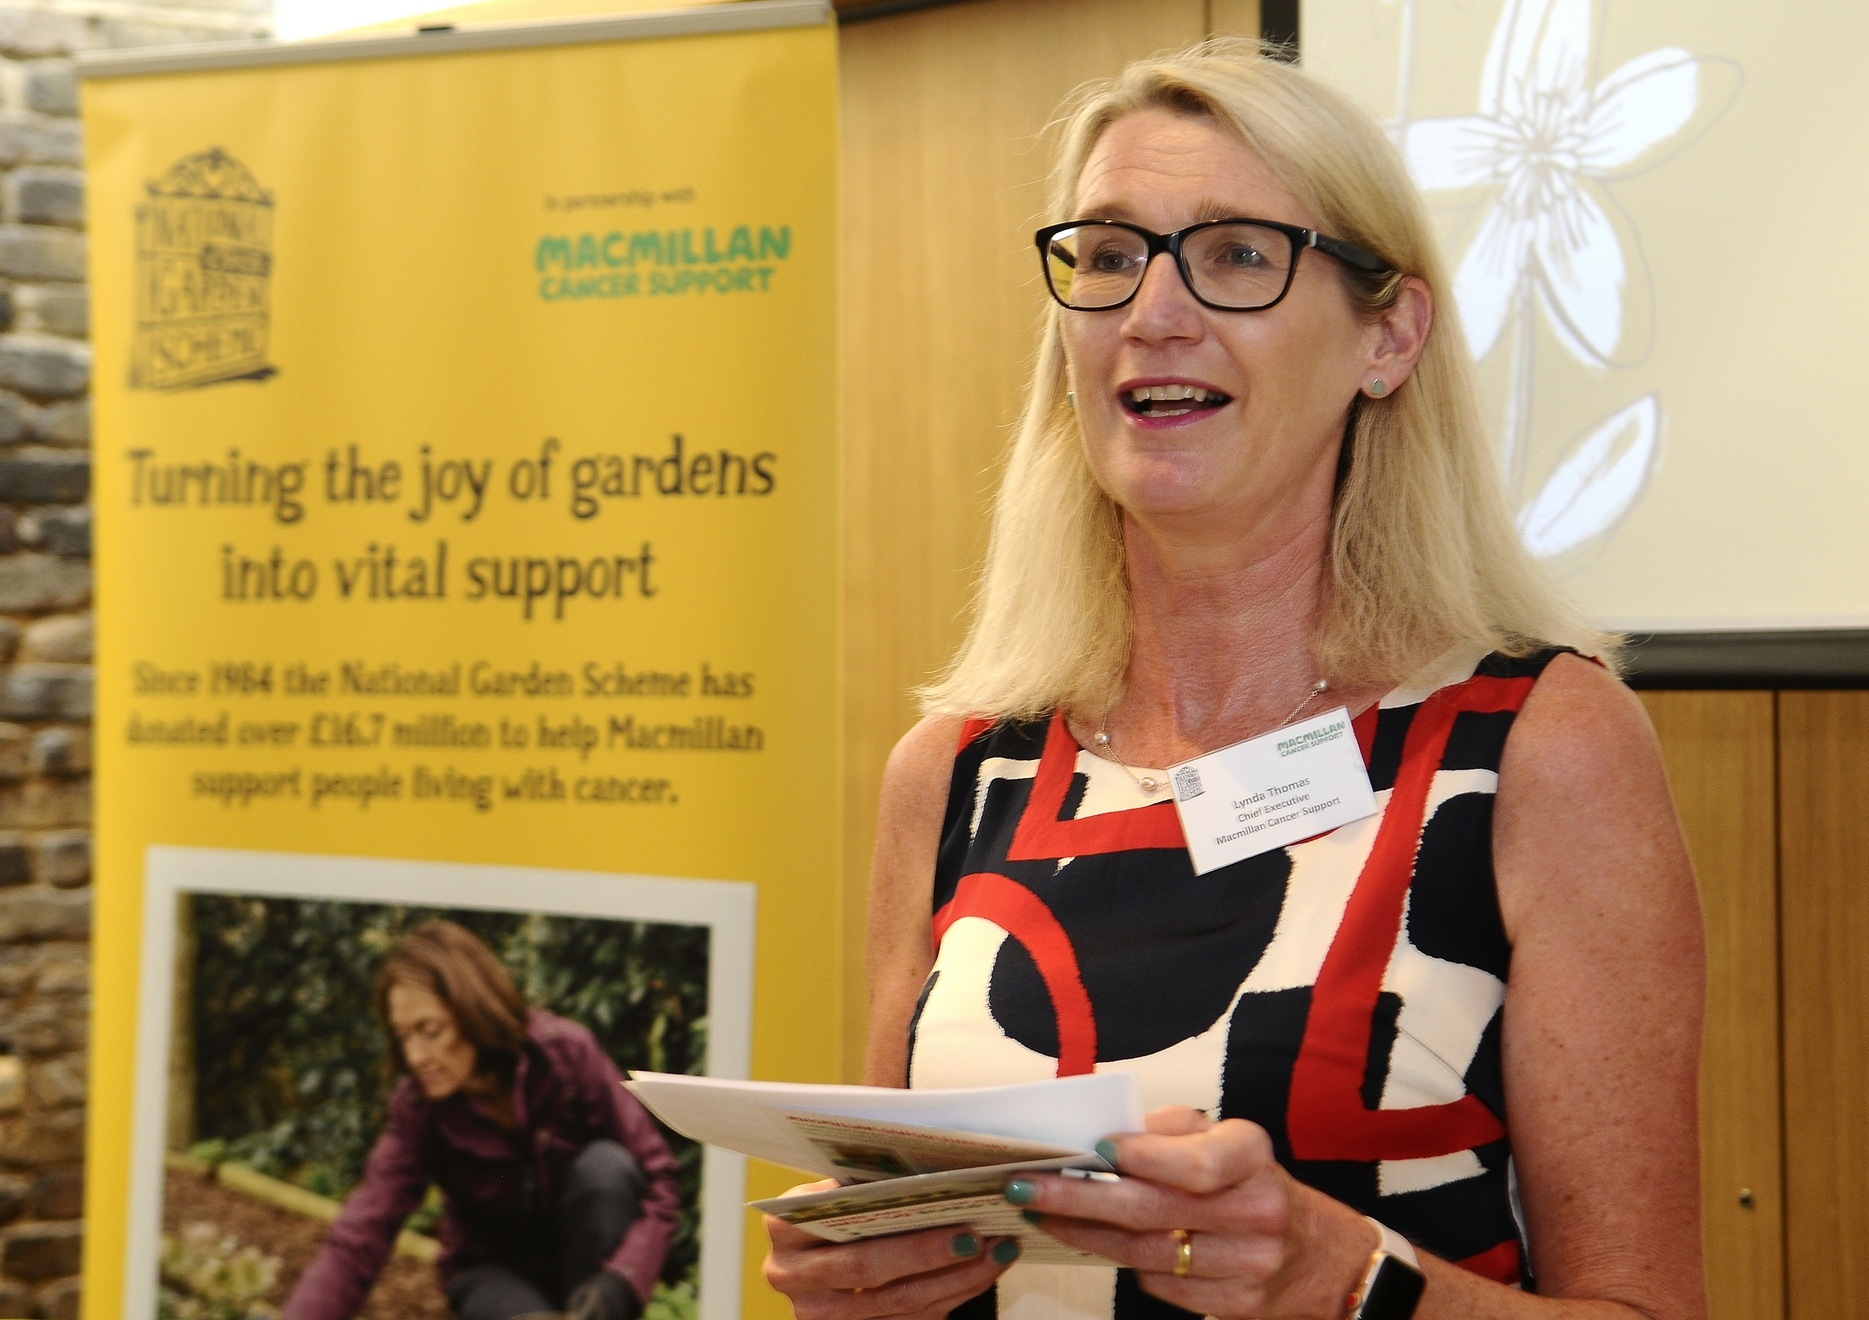 Lynda Thomas, CEO, celebrating 35 years of Macmillan Cancer Support and the National Gardens Scheme's partnership